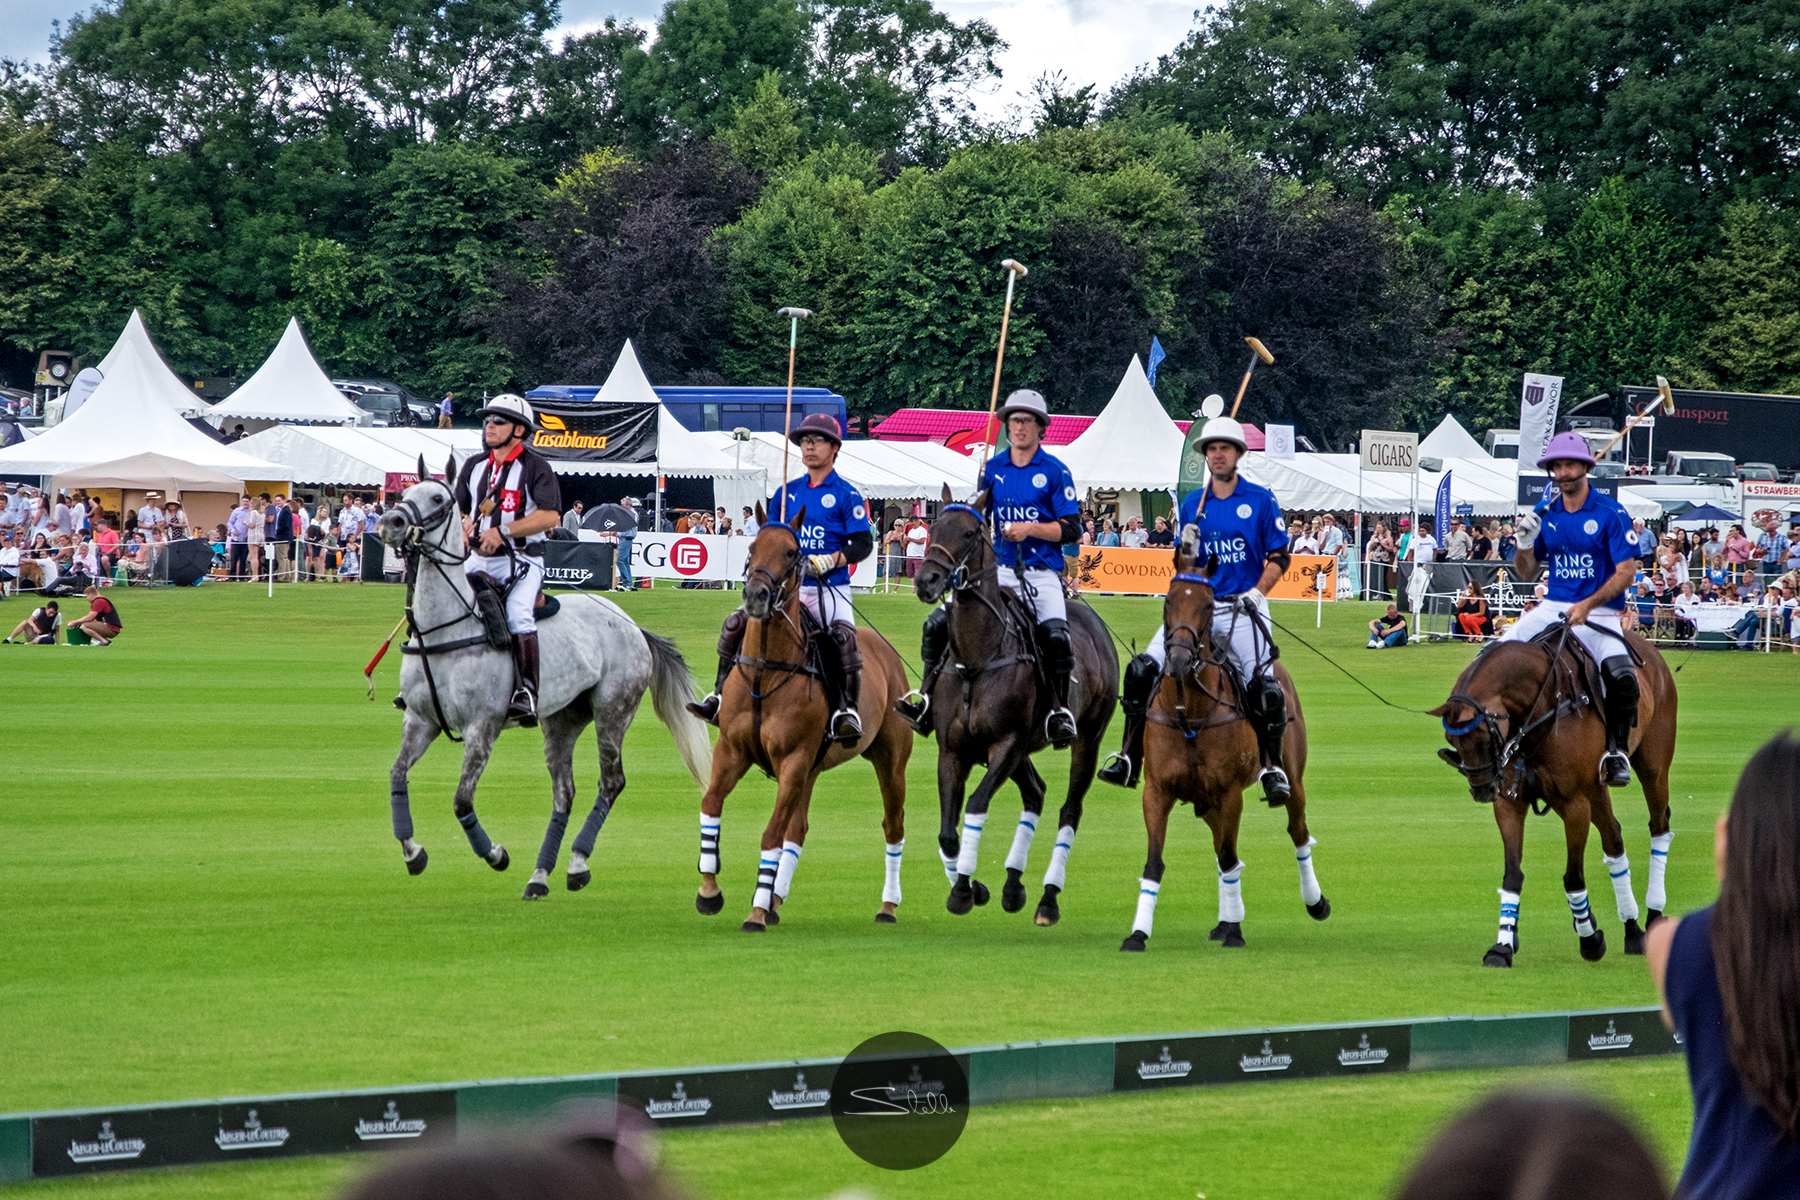 Stella Scordellis Jaeger-LeCoultre Gold Cup 2016 15 Watermarked.jpg